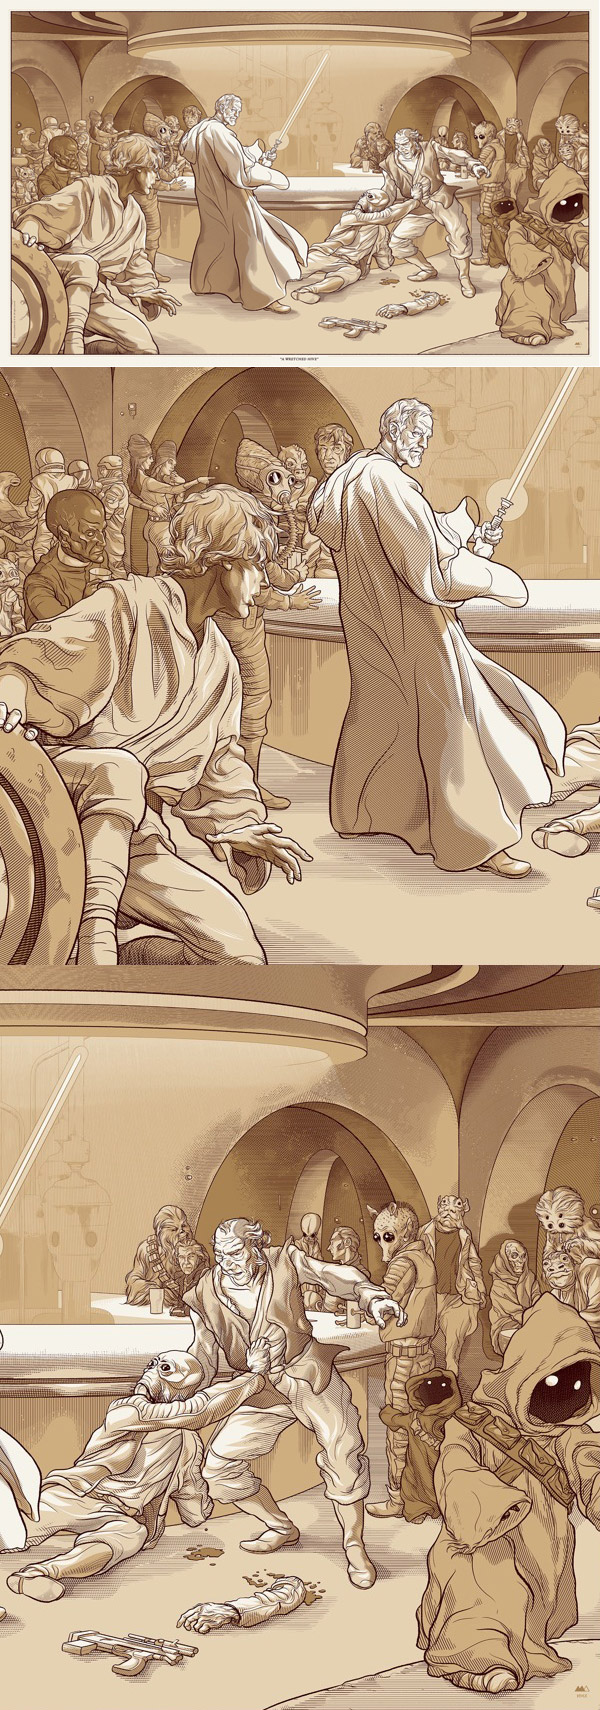 """A Wretched Hive"" Star Wars Print by Martin Ansin"